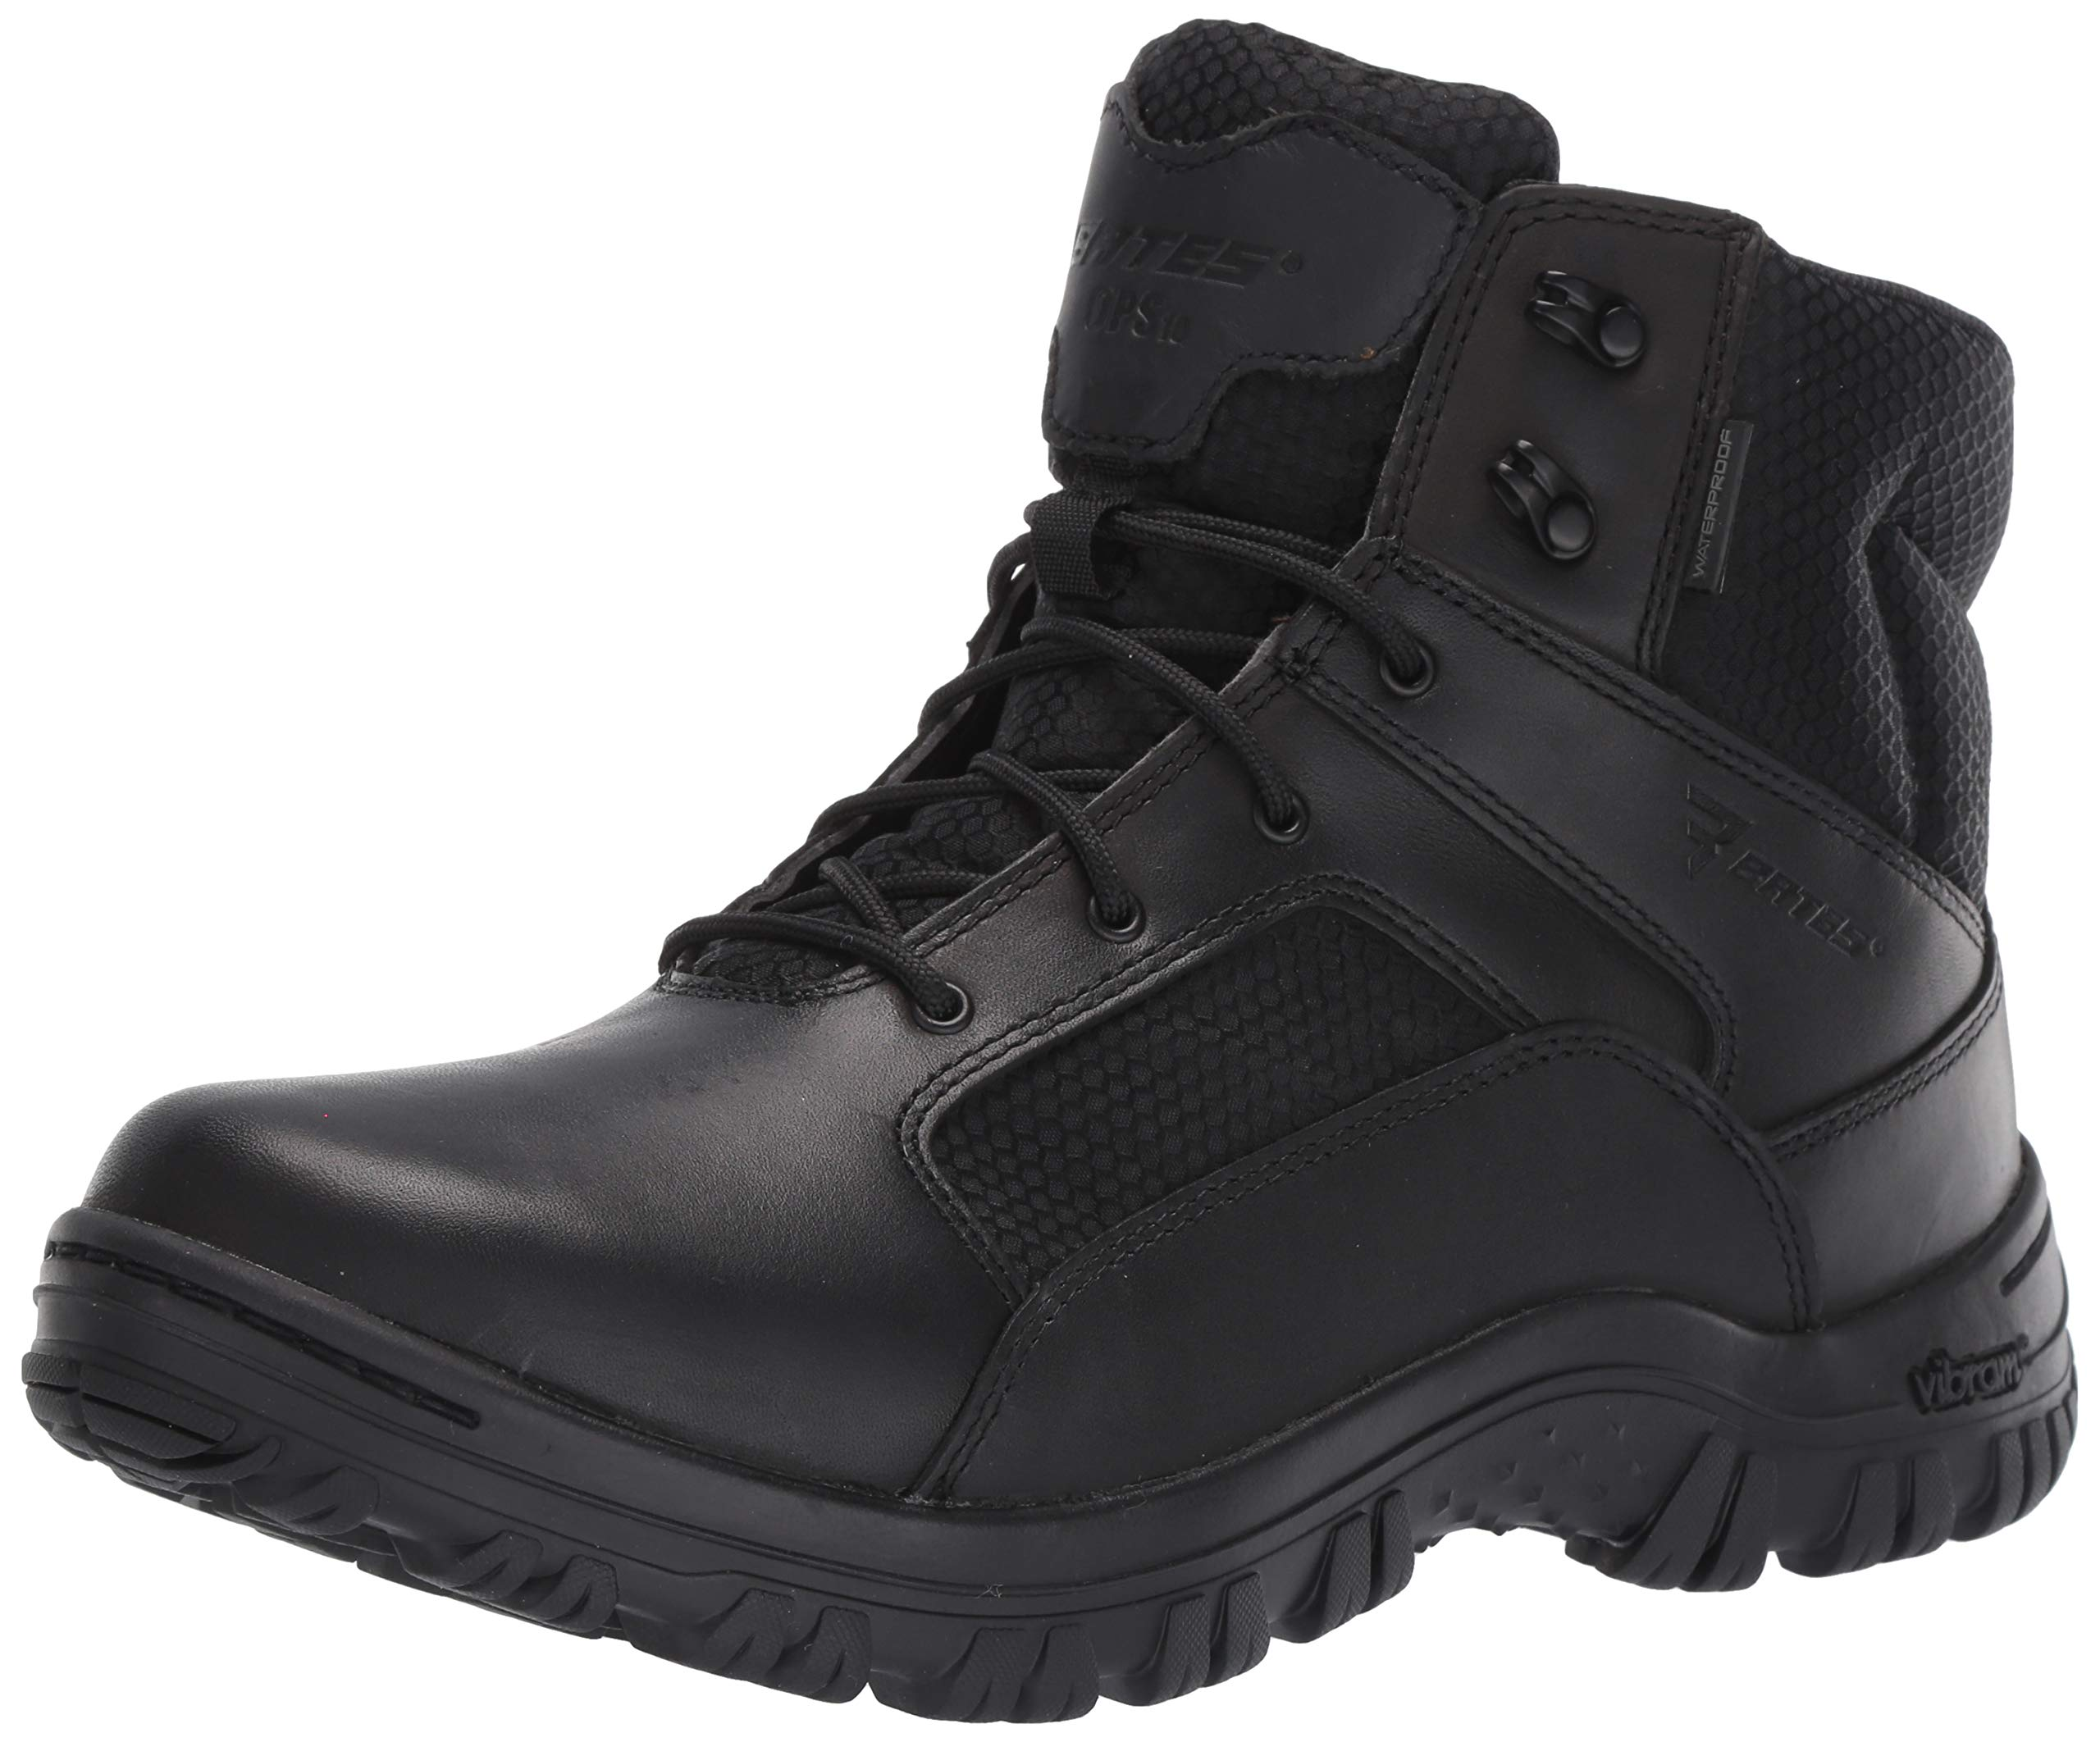 Bates Men's Maneuver Mid Waterproof Fire and Safety Boot, Black, 10.5 Extra Wide US by Bates